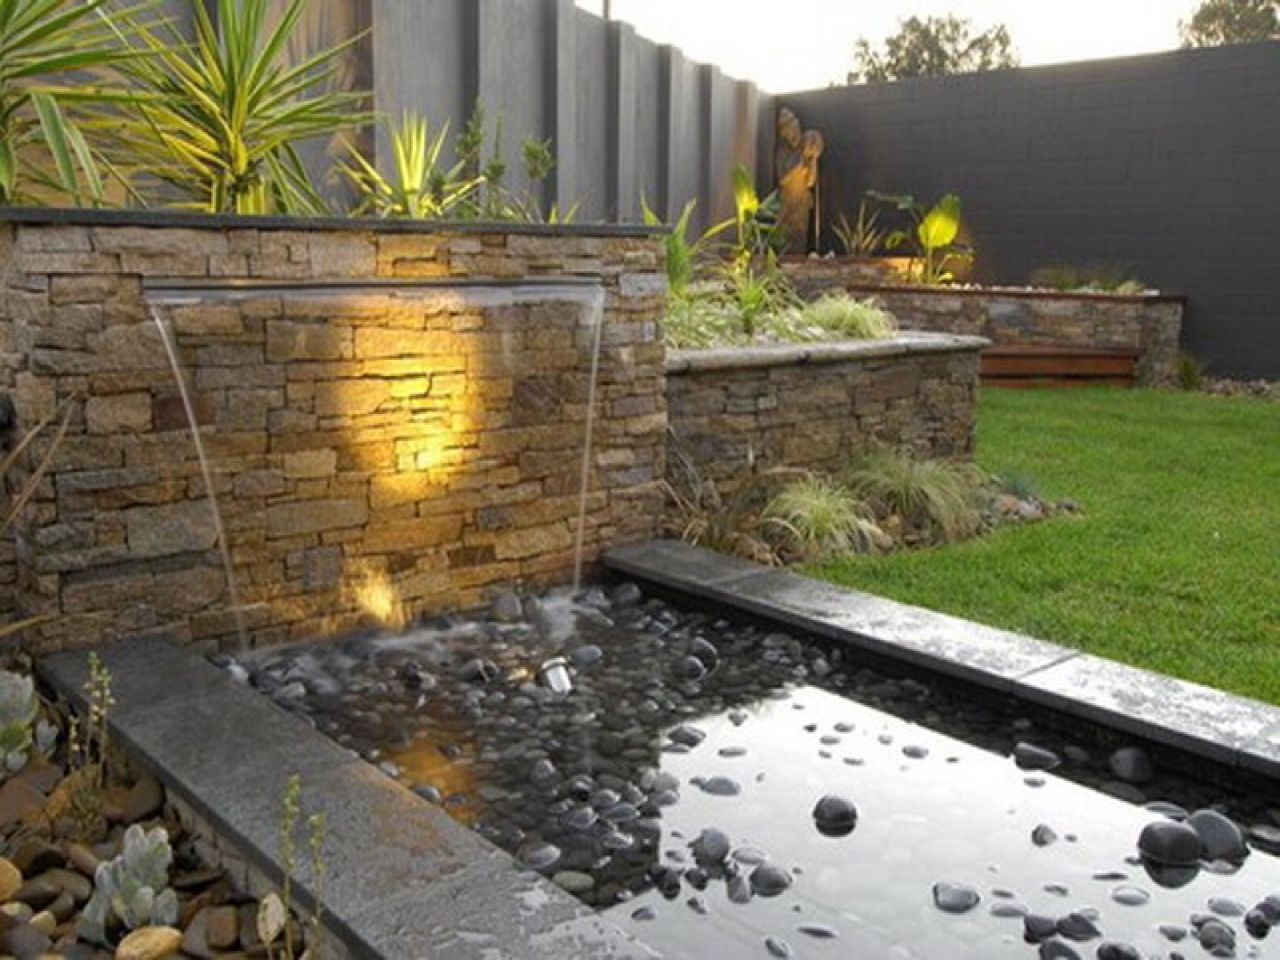 15 Stunning Garden Water Features That Will Leave You Speechless Water Features In The Garden